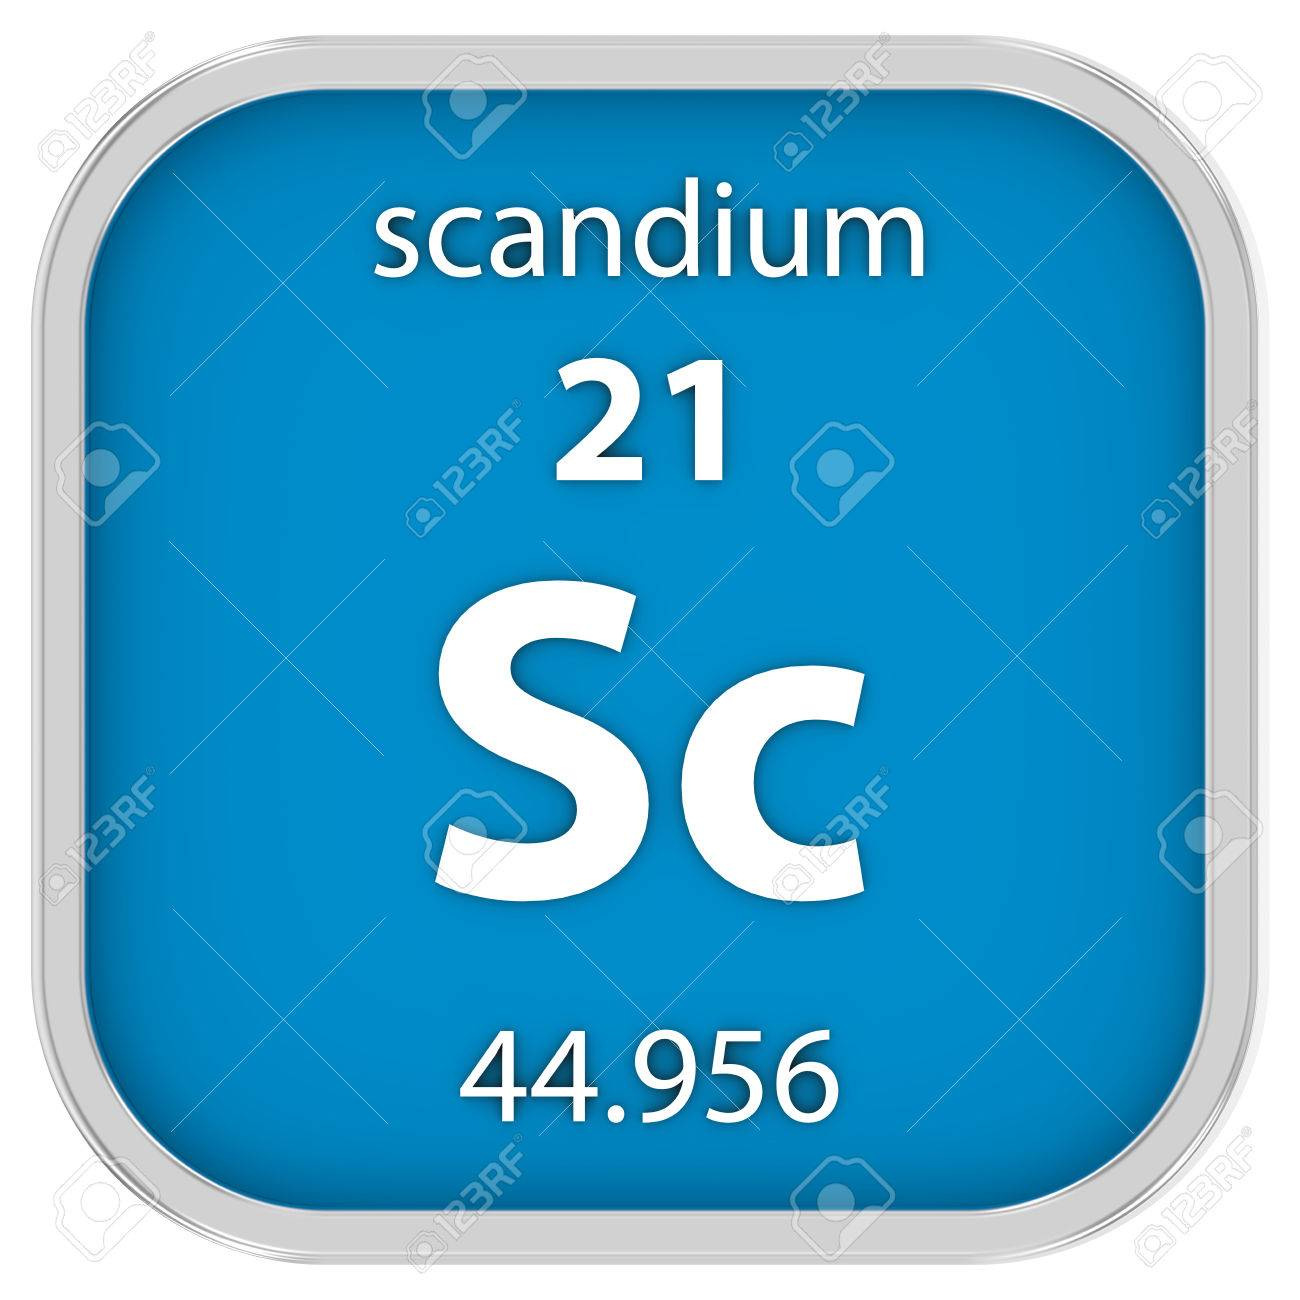 Scandium on the periodic table choice image periodic table images scandium on the periodic table gallery periodic table images scandium on the periodic table images periodic gamestrikefo Images